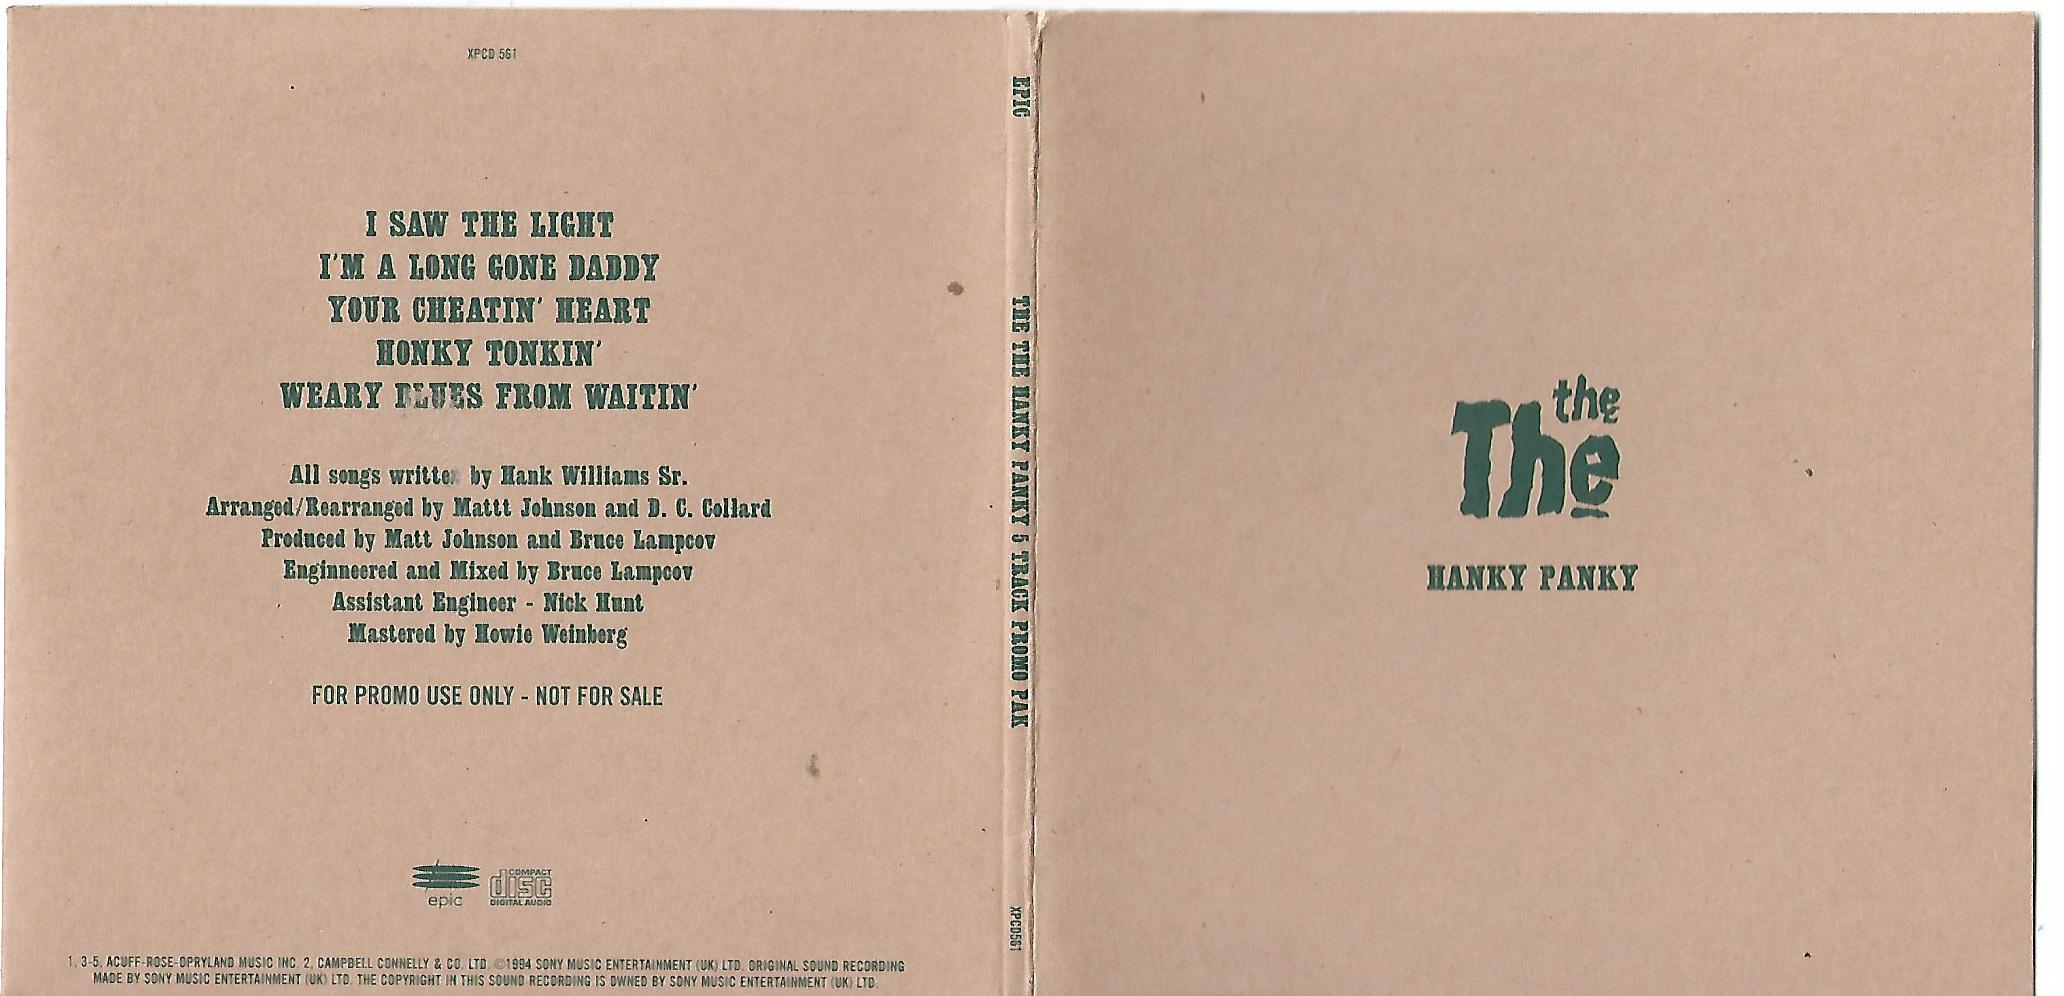 THE - Hanky Panky Sampler 5-track Card Sleeve